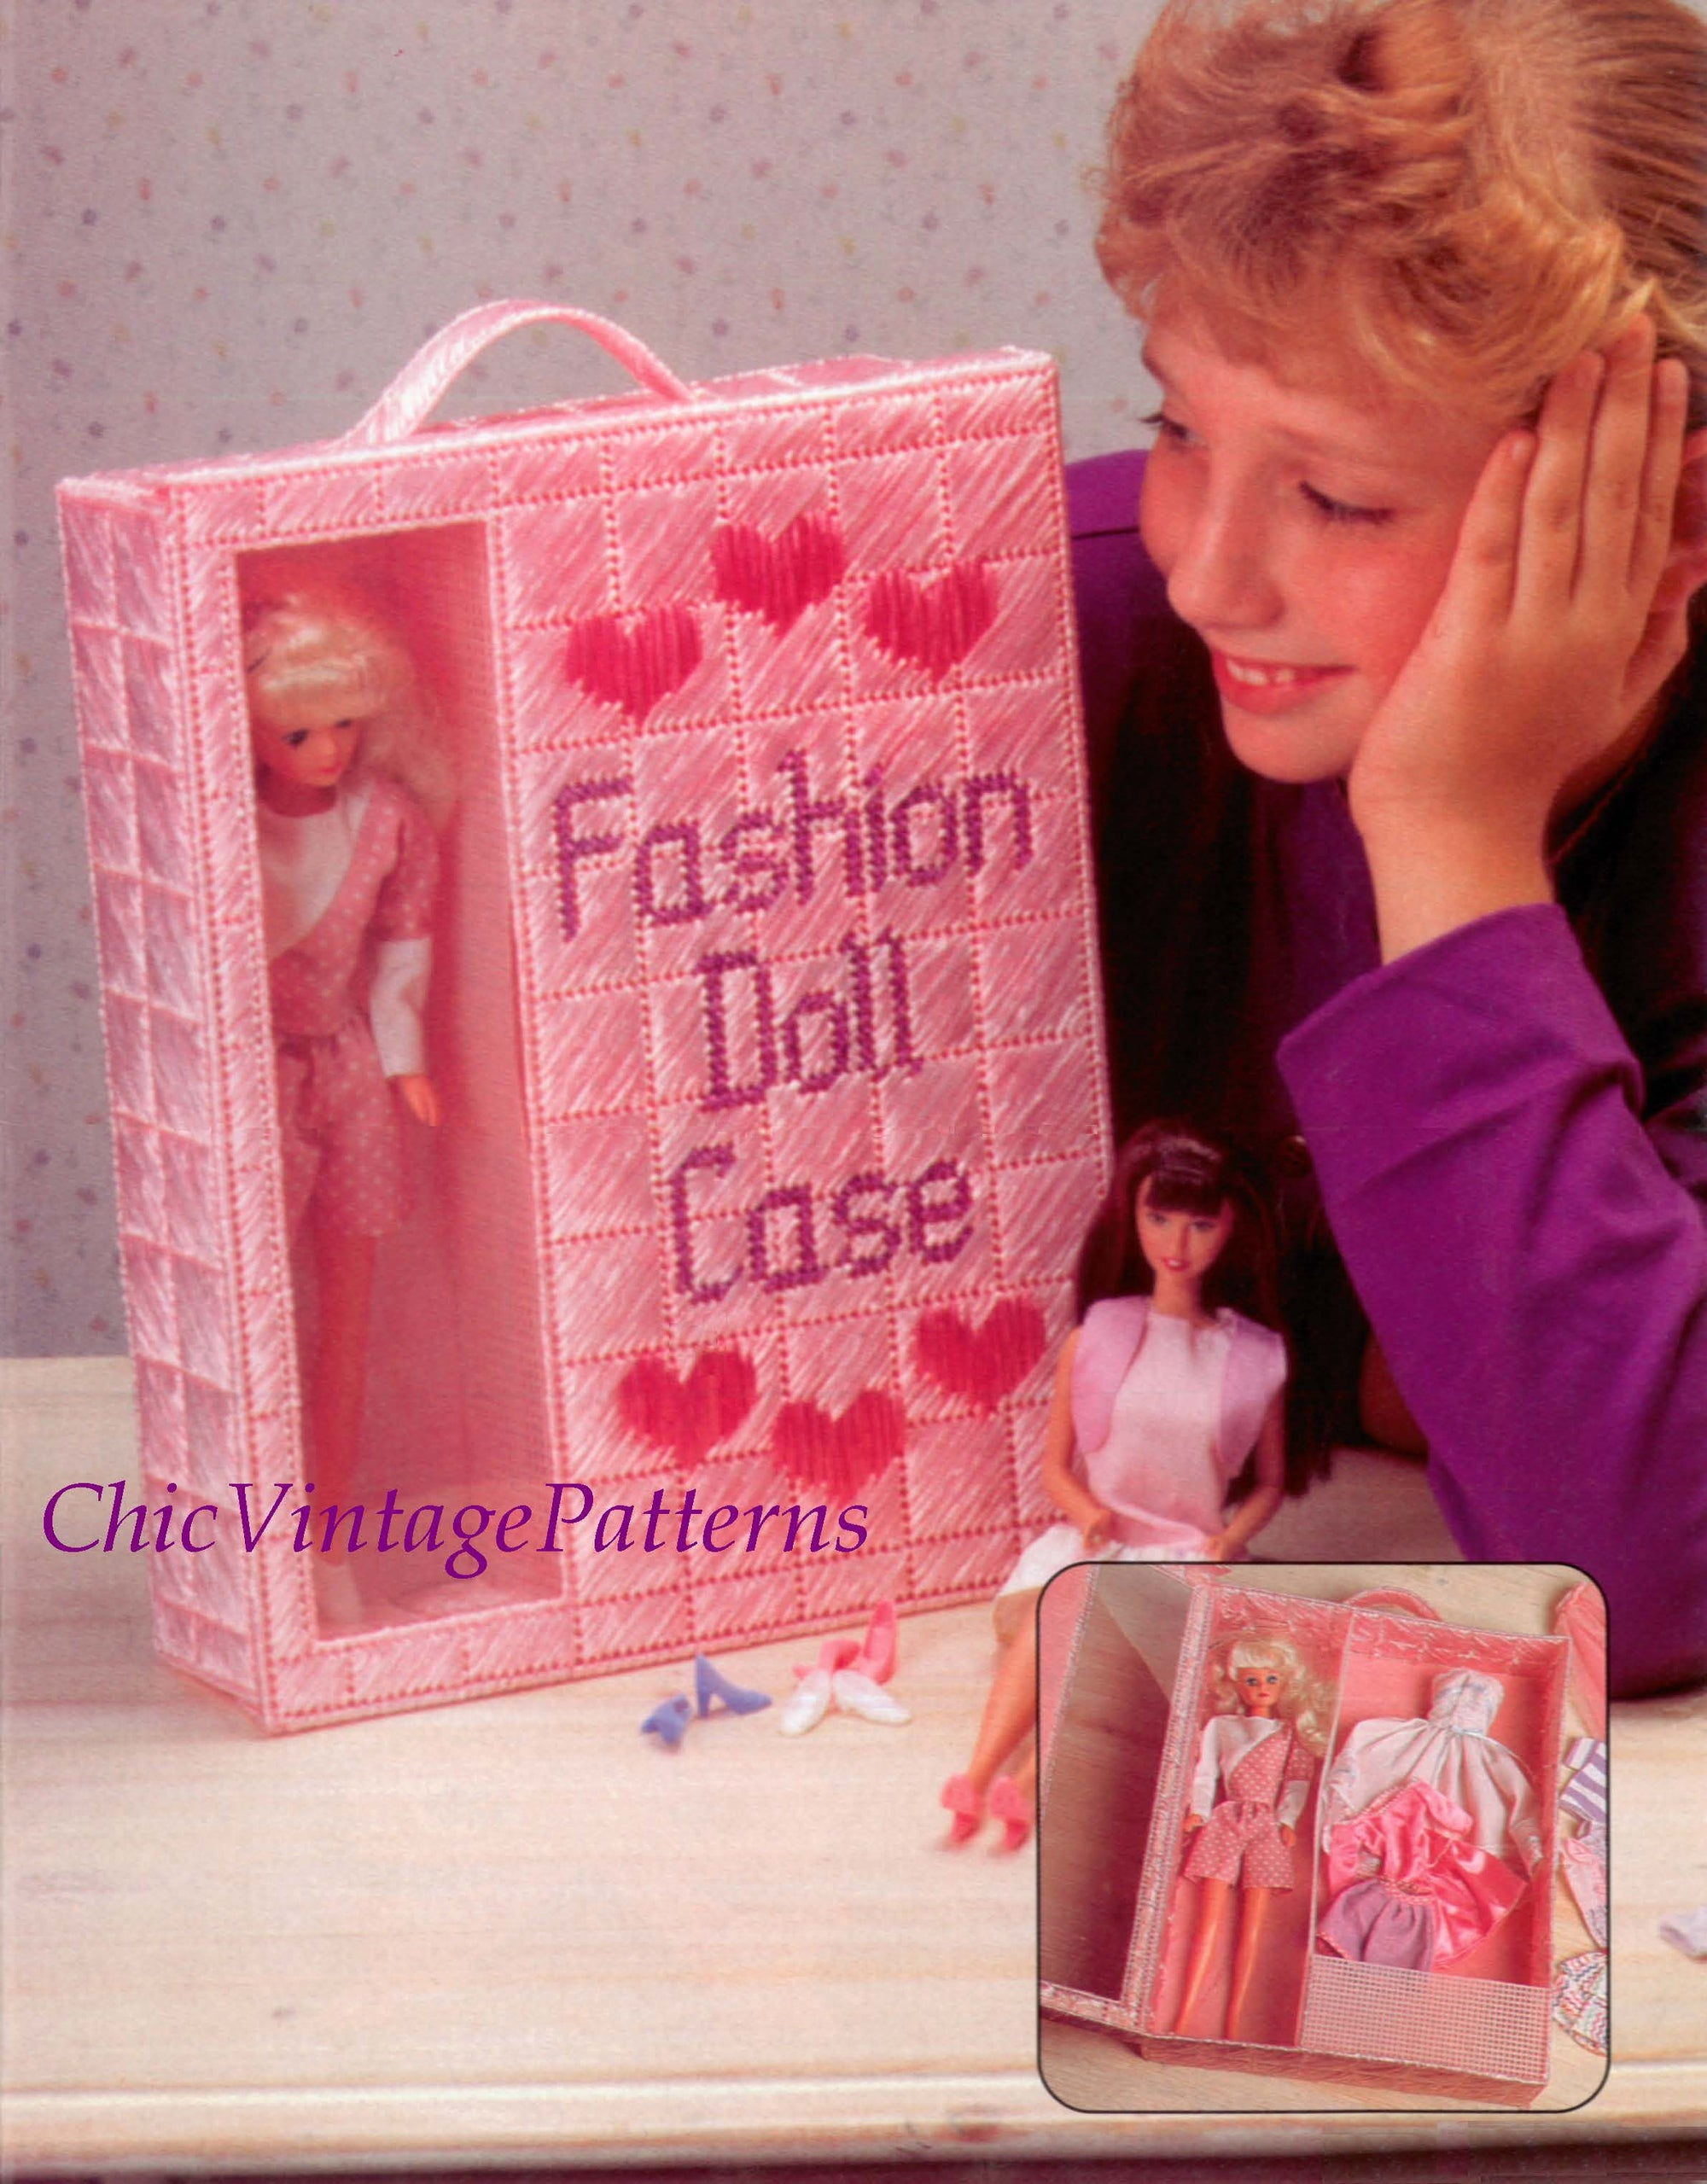 Plastic Canvas Toy and Doll Patterns